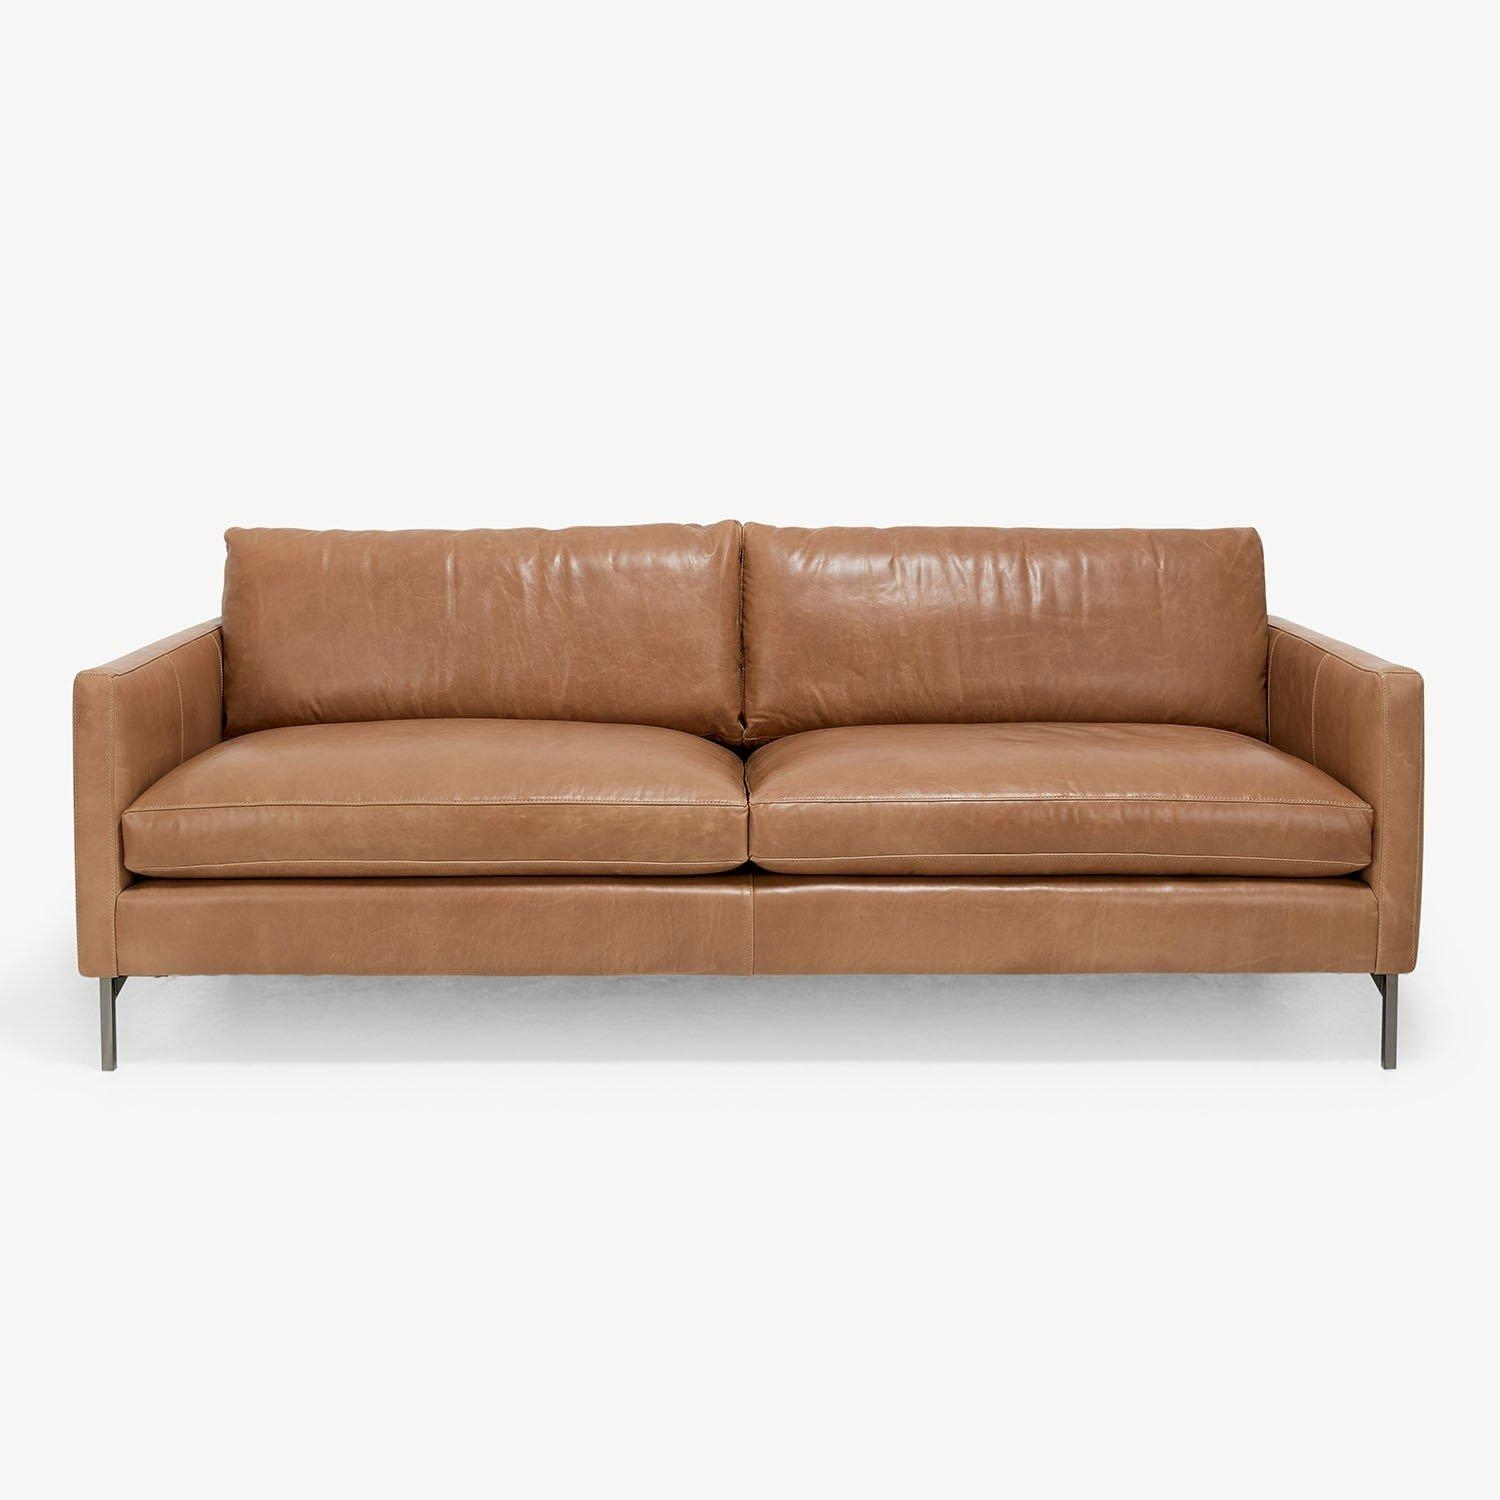 Sofas, Couches, And Loveseats For Your Nyc Apartment At Abc Home Throughout Caramel Leather Sofas (View 19 of 20)